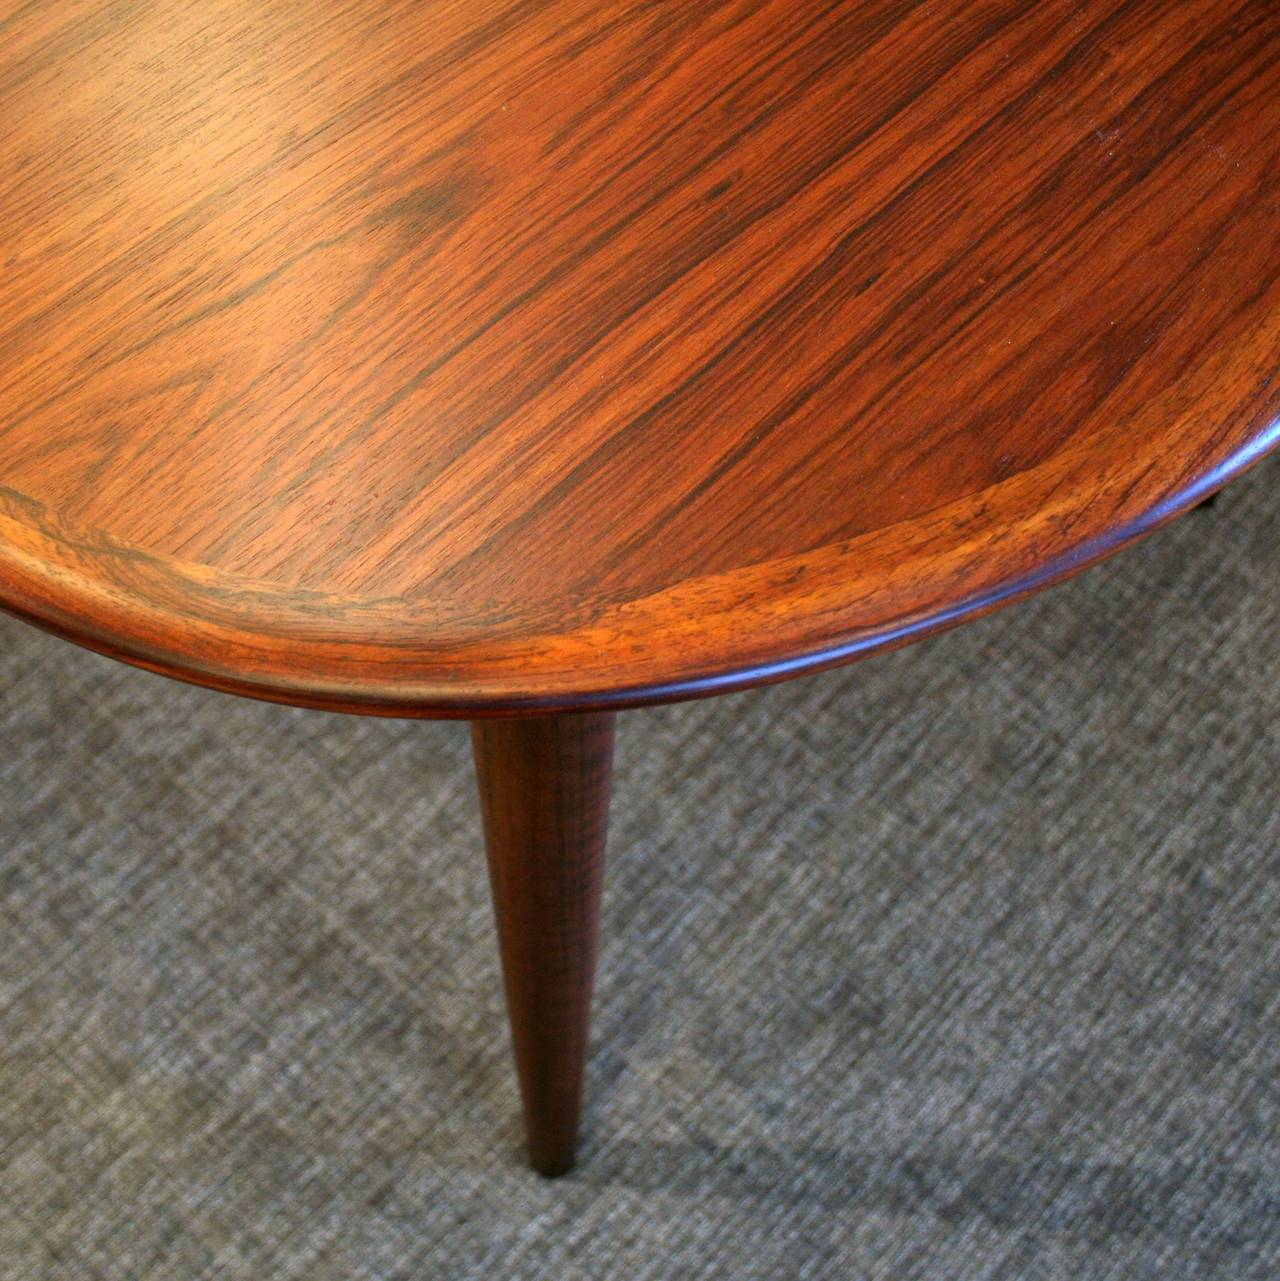 Vintage Danish Rosewood Dining Table With Two Leaves At